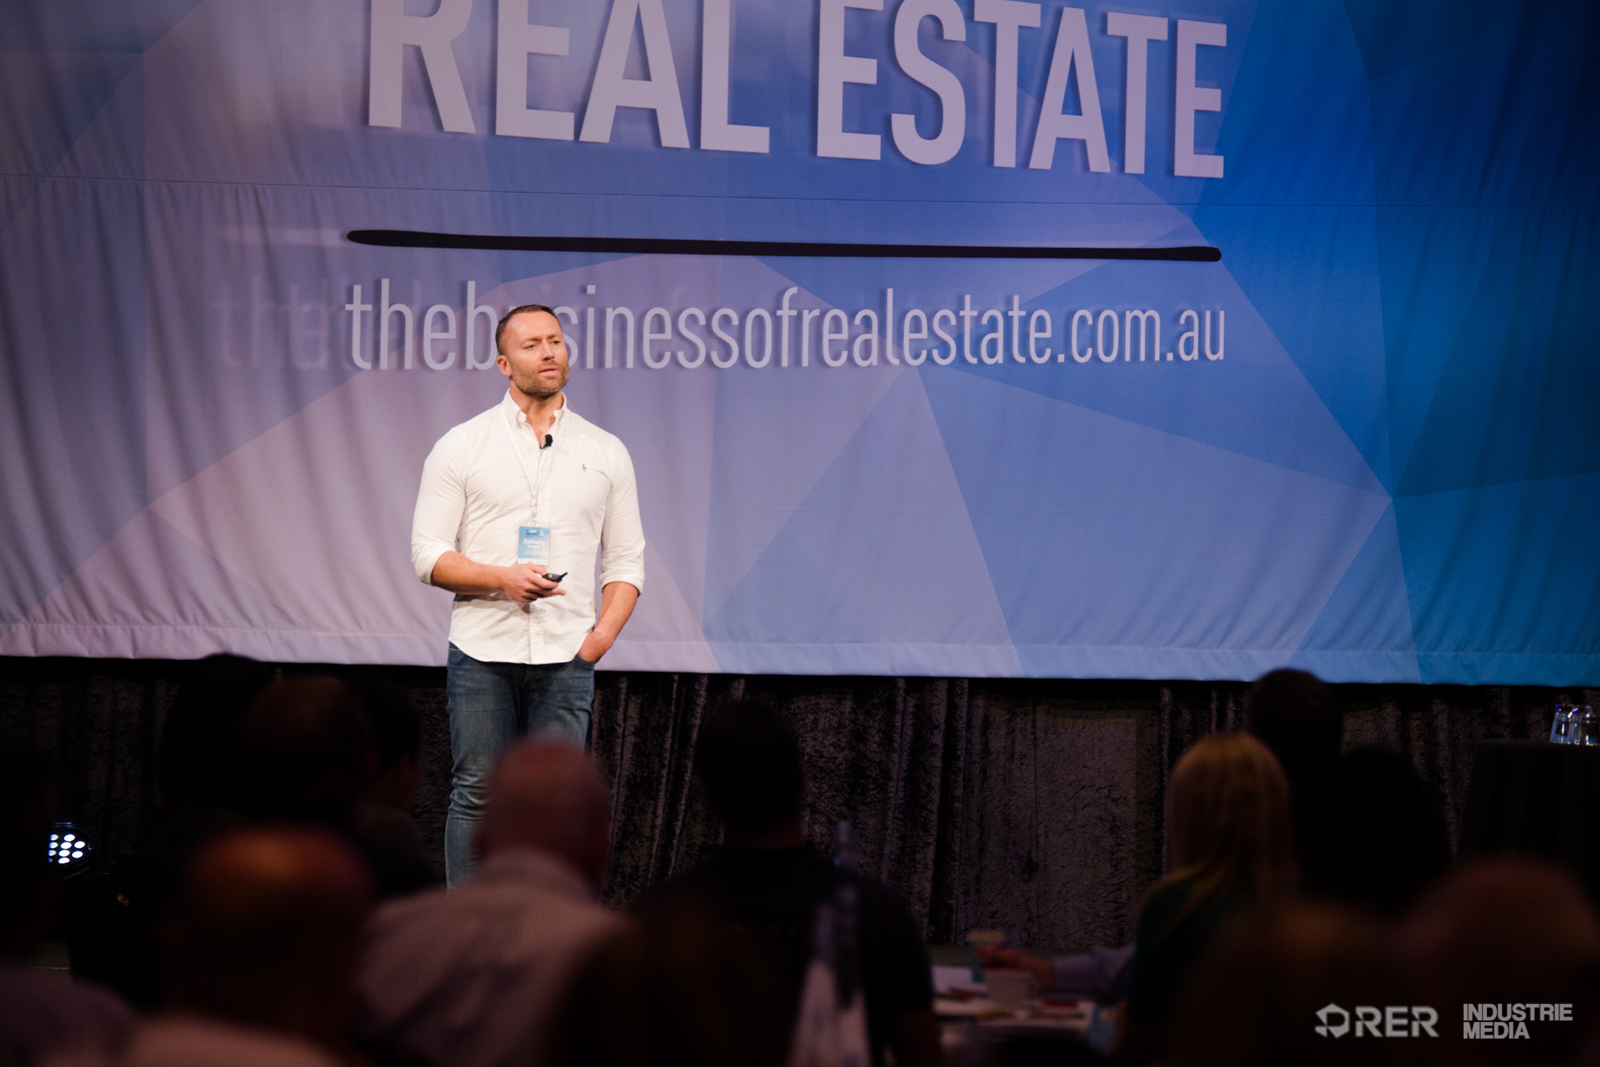 http://www.thebusinessofrealestate.com.au/wp-content/uploads/2016/09/RER_BUSINESS_OF_REAL_ESTATE_DAY_2-48.jpg